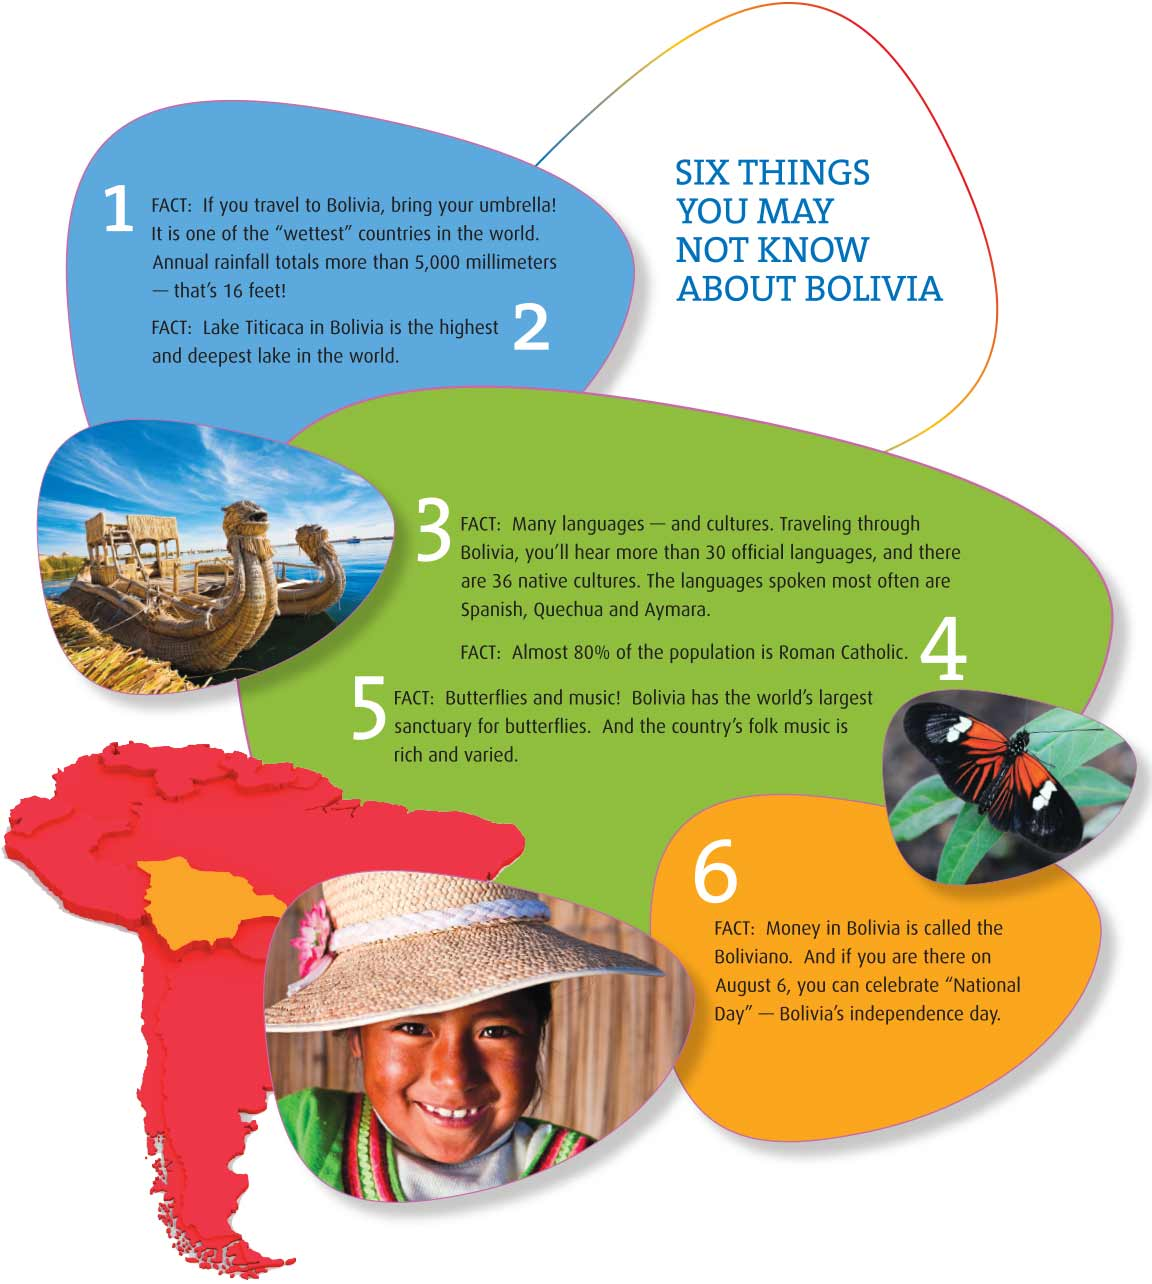 Information graphic about Bolivia for the newsletter of the nonprofit organization Missionary Childhood Association.